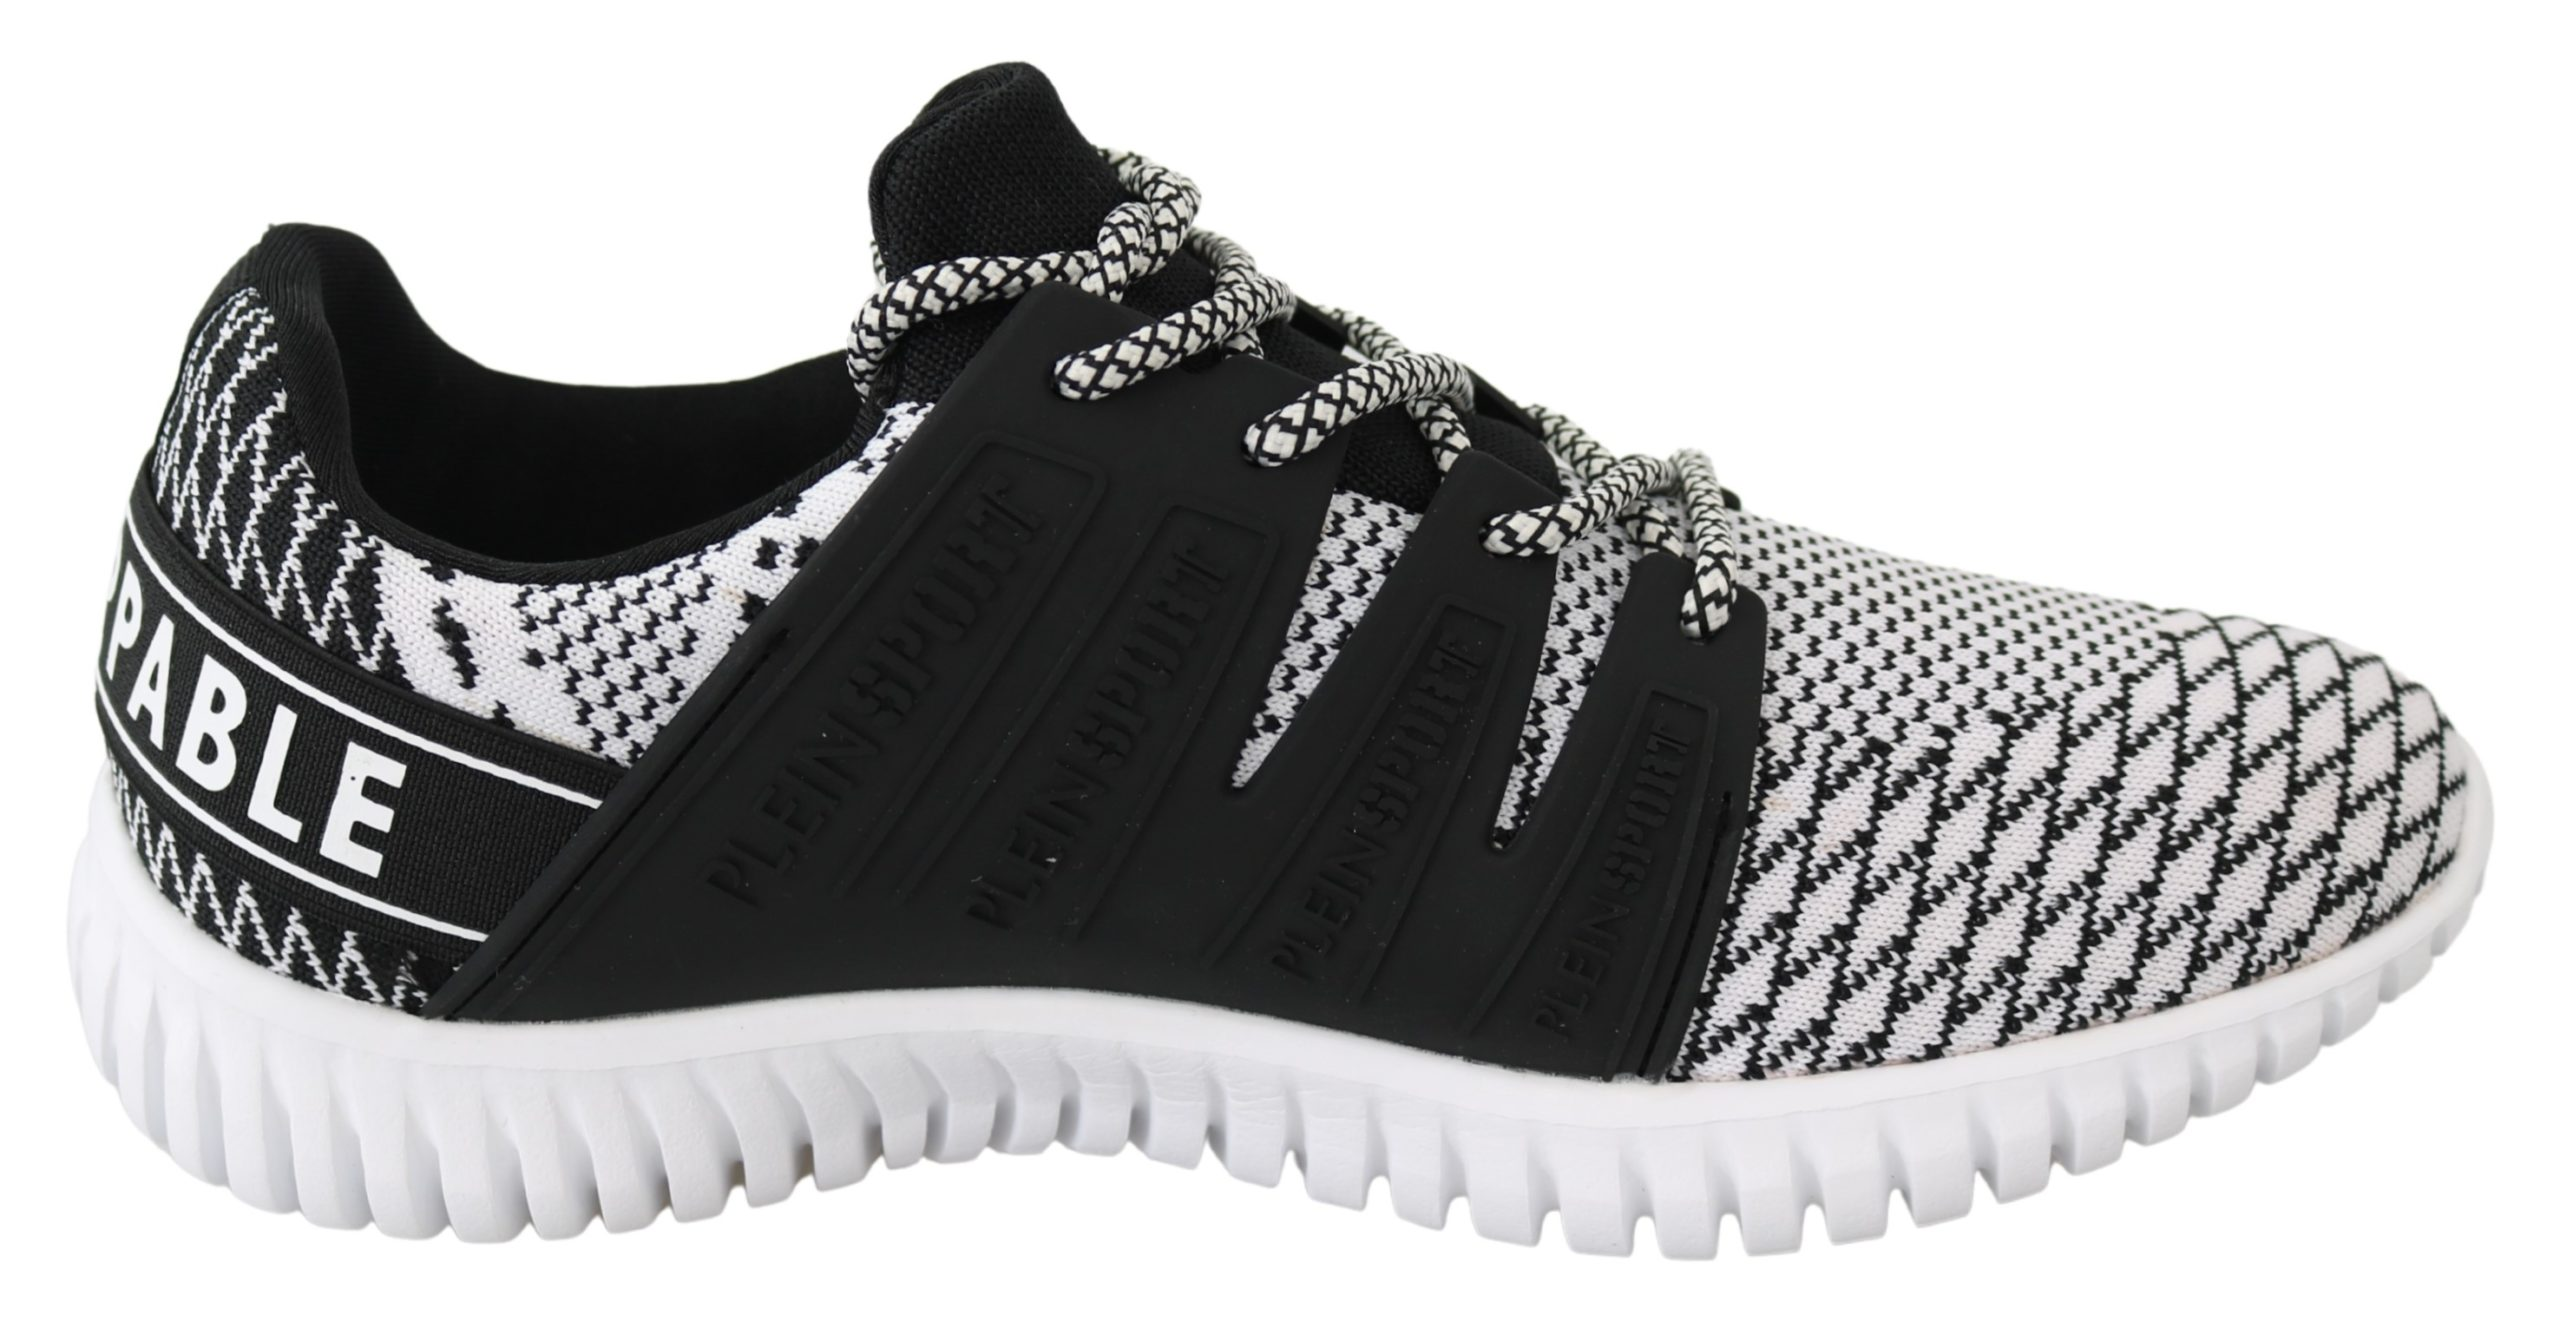 White Polyester Runner Mason Sneakers Shoes - EU40/US7